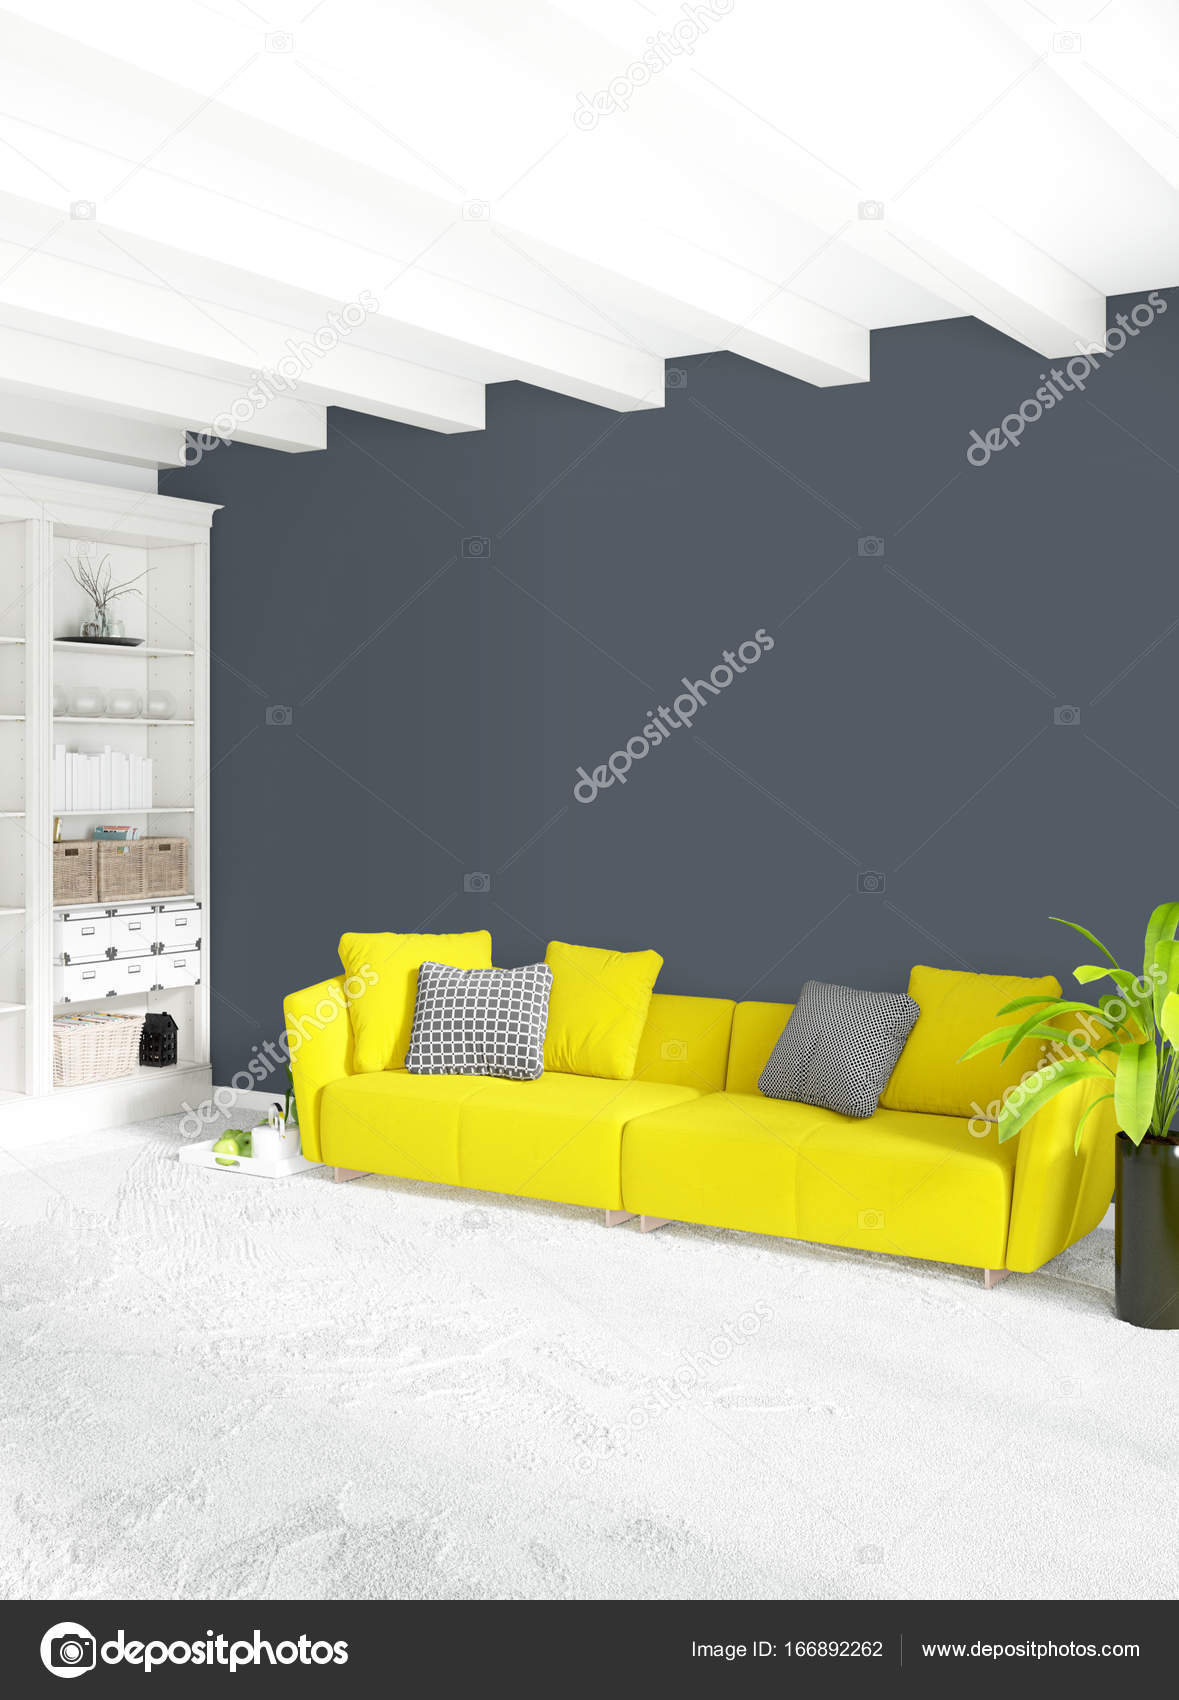 Modern Bedroom Yellow Sofa Luxury Minimal Style Interior Loft Design With  Eclectic Wall. 3D Rendering